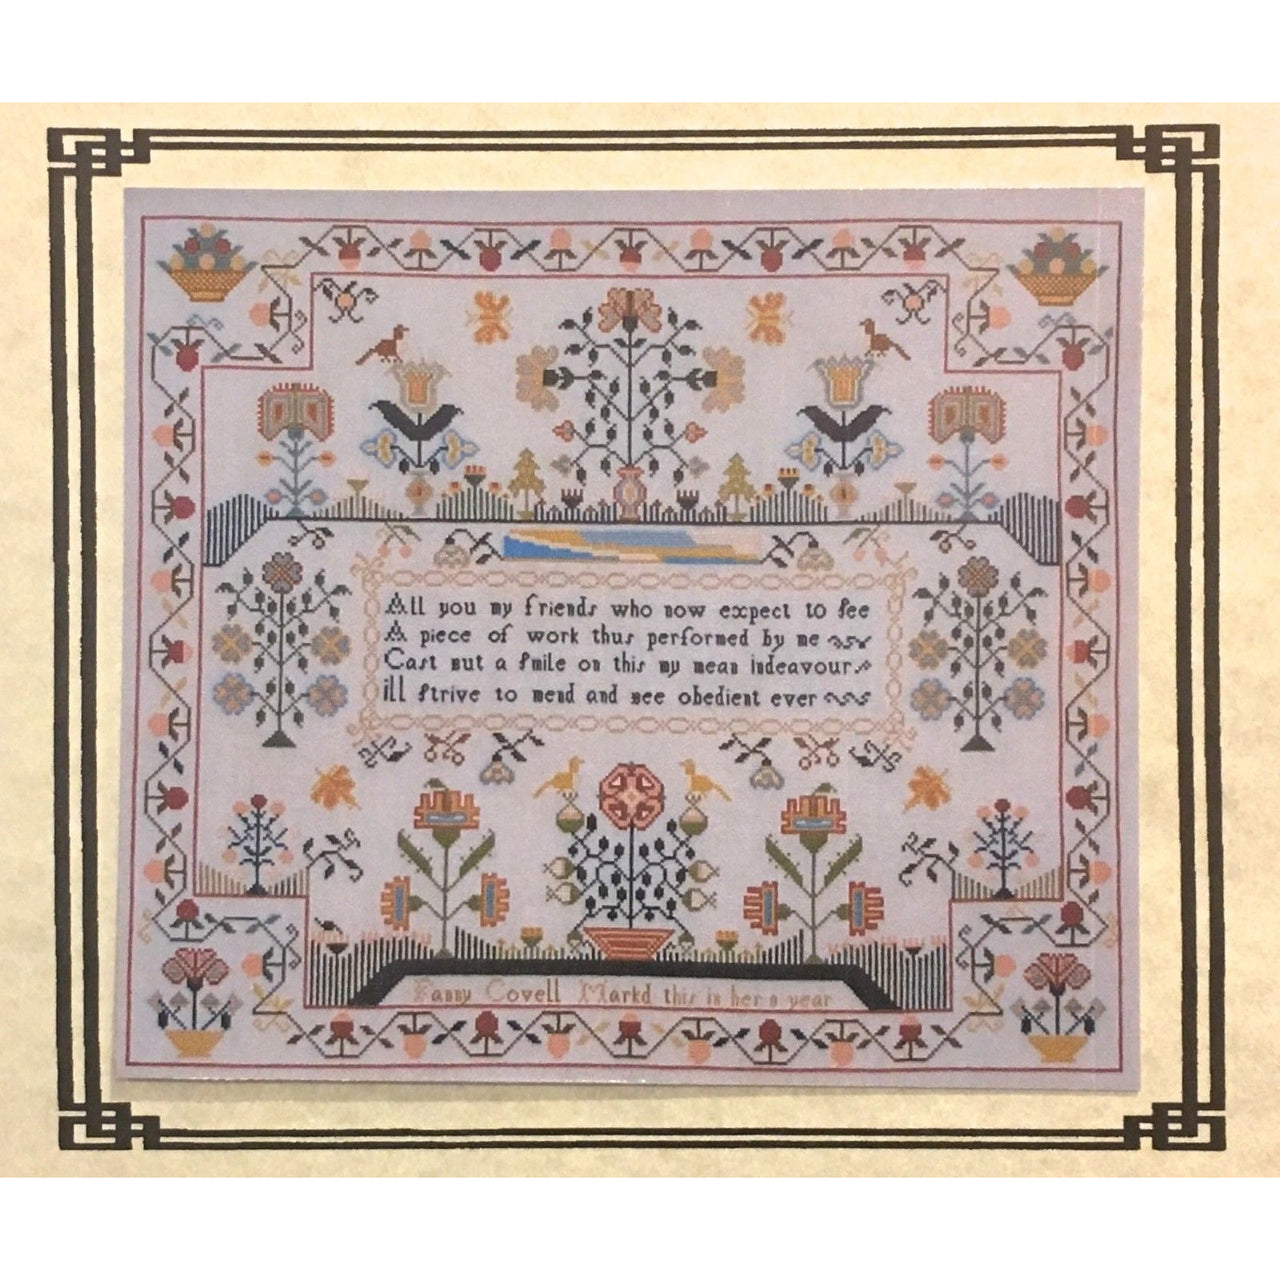 Fanny Covell 1790 Reproduction Sampler Cross Stitch Pattern